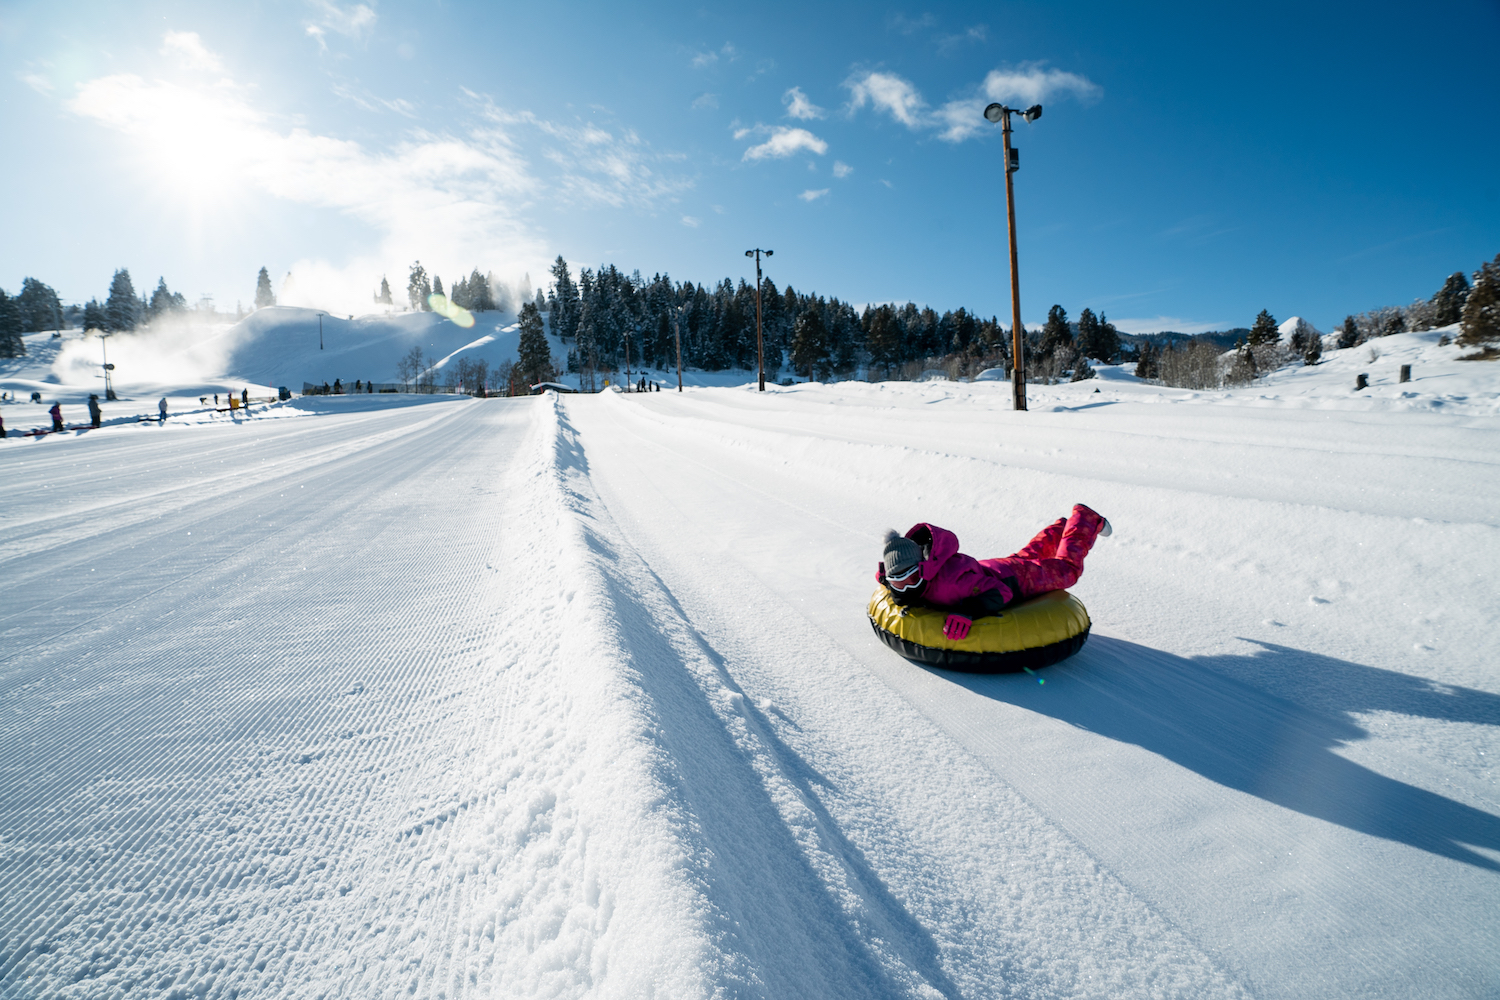 woodward park city snow tubing